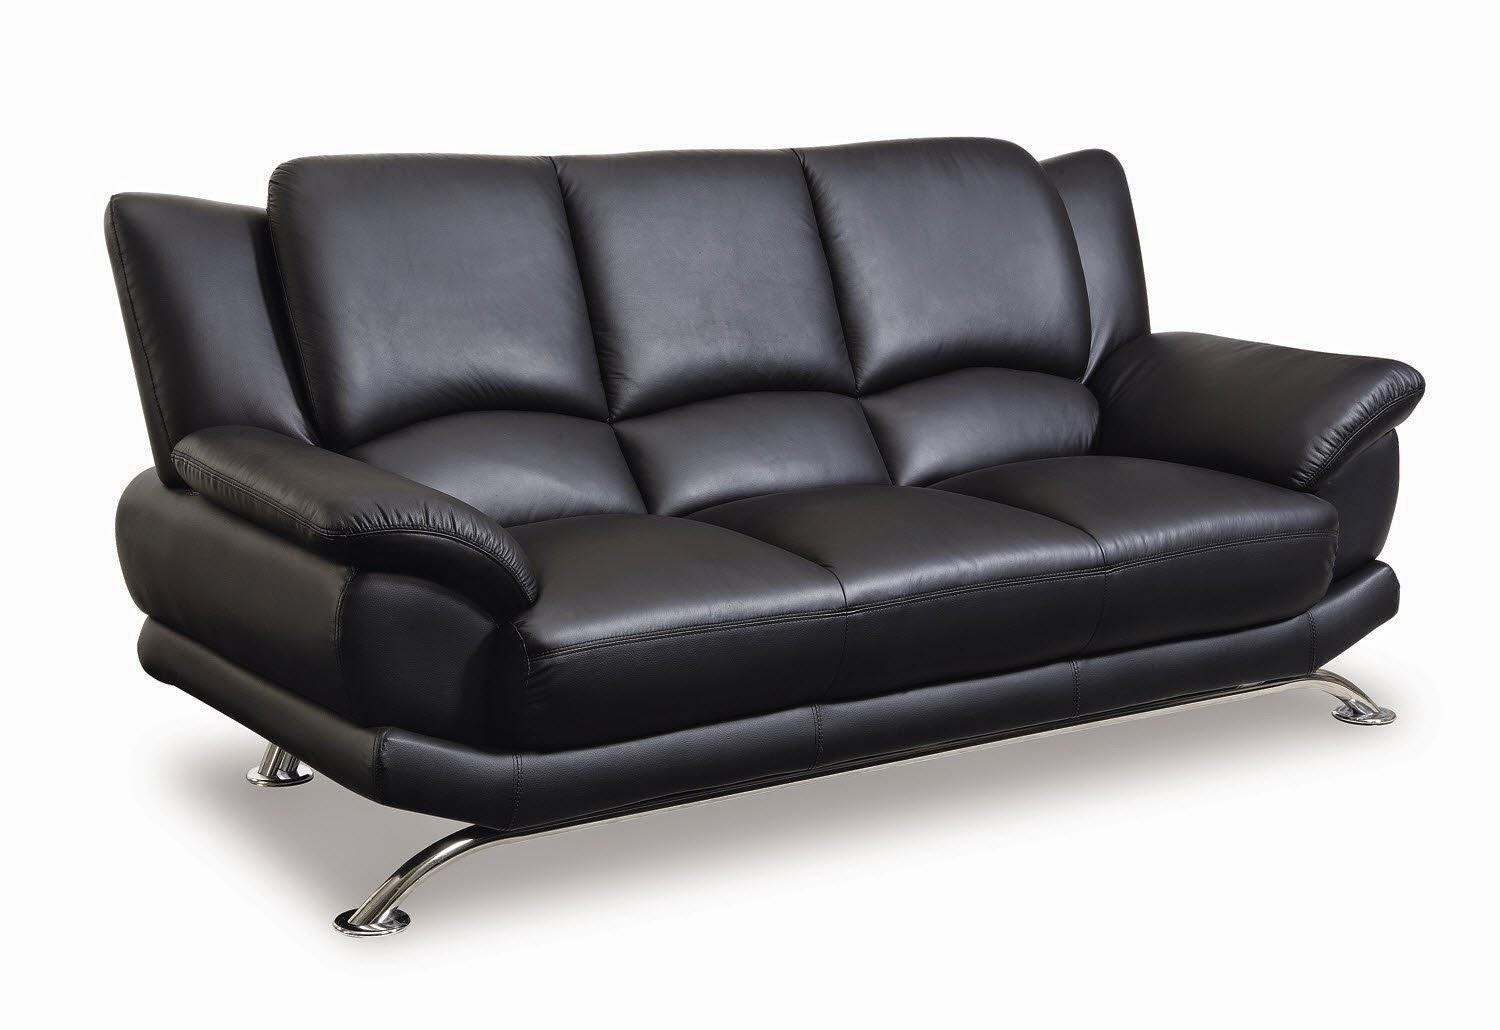 Black Leather Sofa In Black Modern Couches (Image 5 of 20)